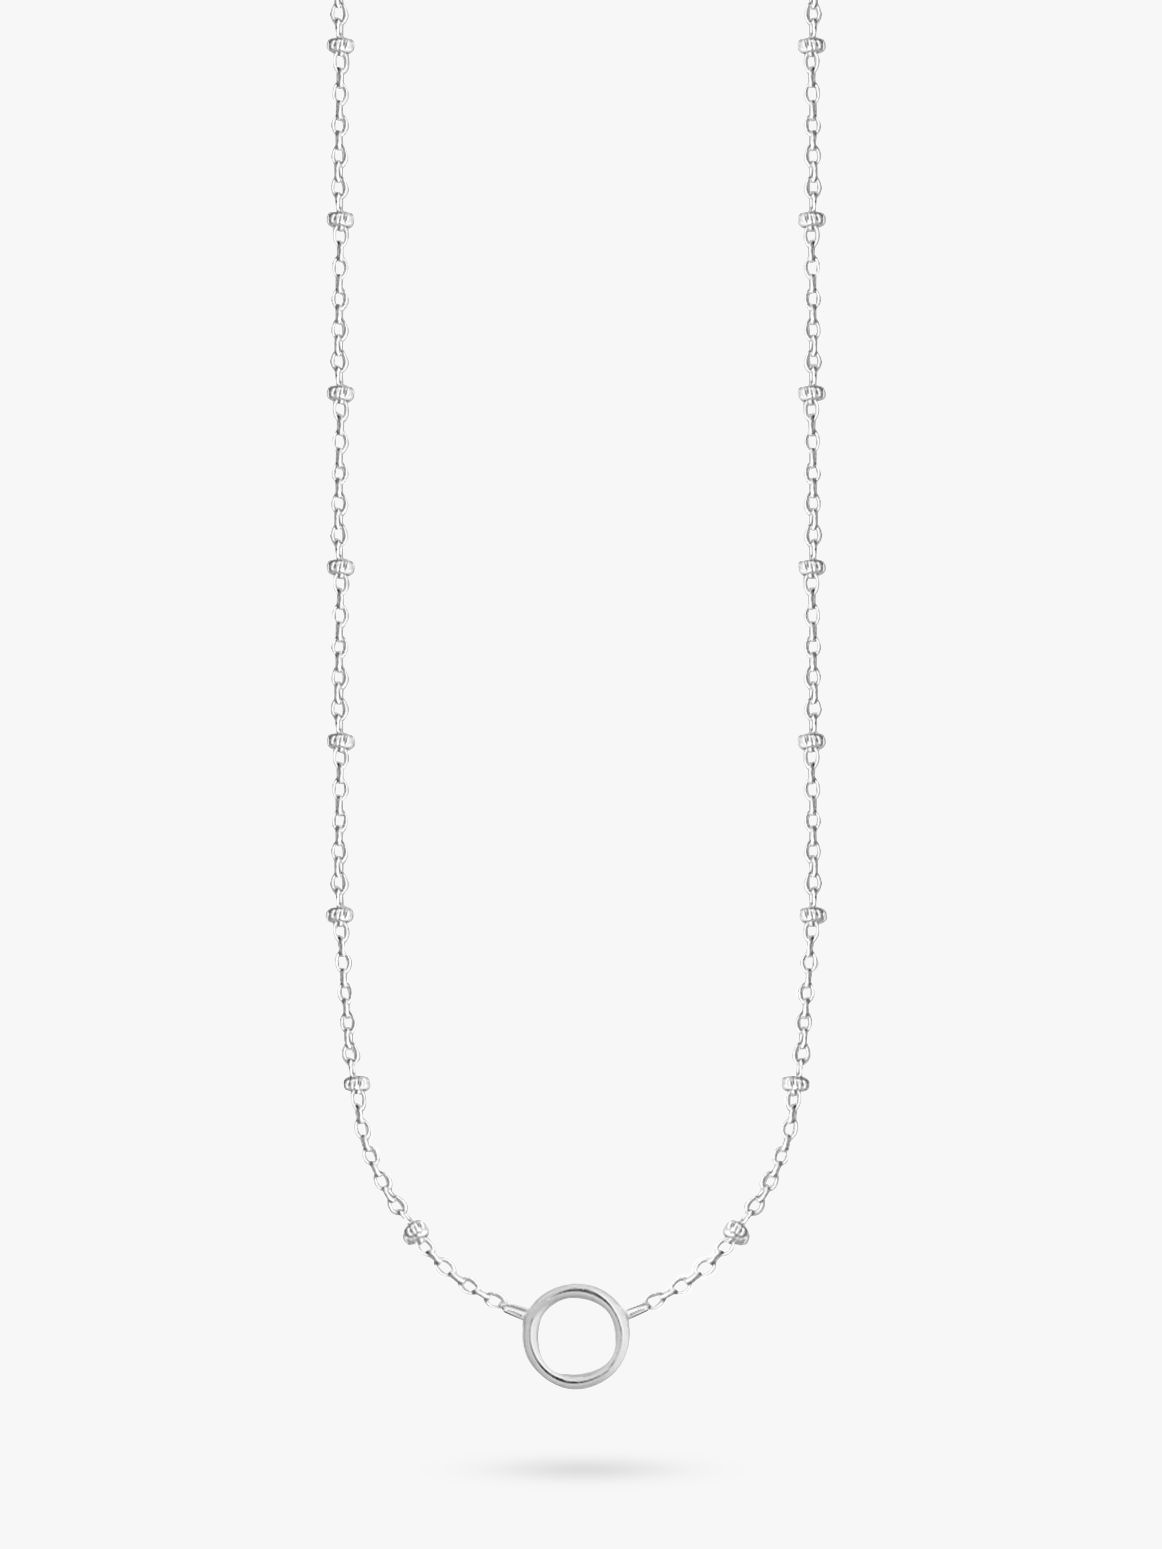 compare the necklace Teach and learn the necklace with ideas from this resource guide the necklace - study guide the compare the necklace themes and literary devices to these.